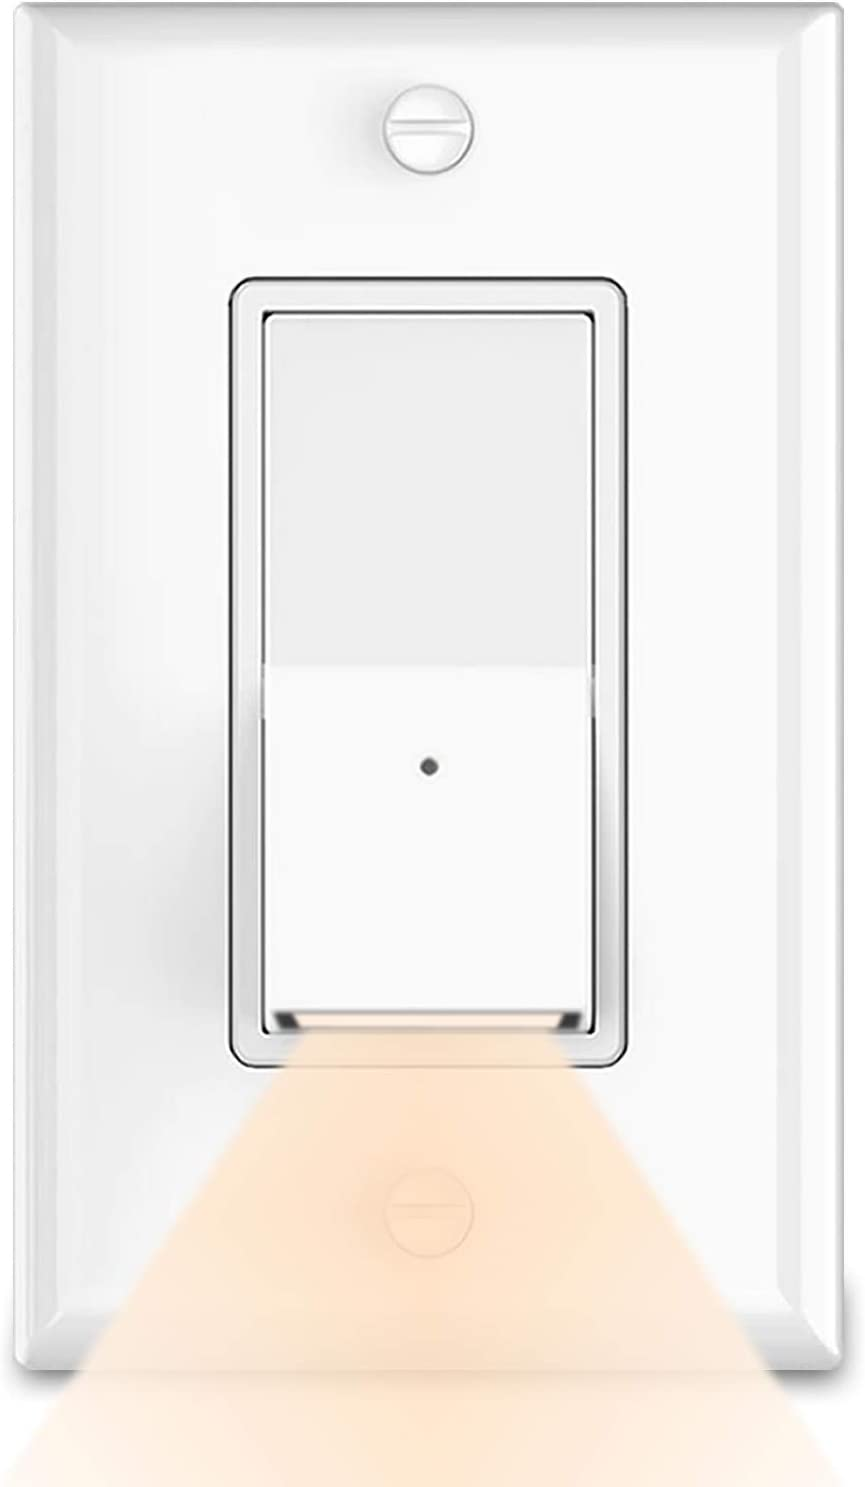 10Pack Decorator On/Off Paddle Rocker Light Switch with LED Night Light,Single Pole,3 Wire,Grounding Screw,Residential Grade,15A 120V,Decora Interrupter Without Wall Switch Plates,Warm White LED